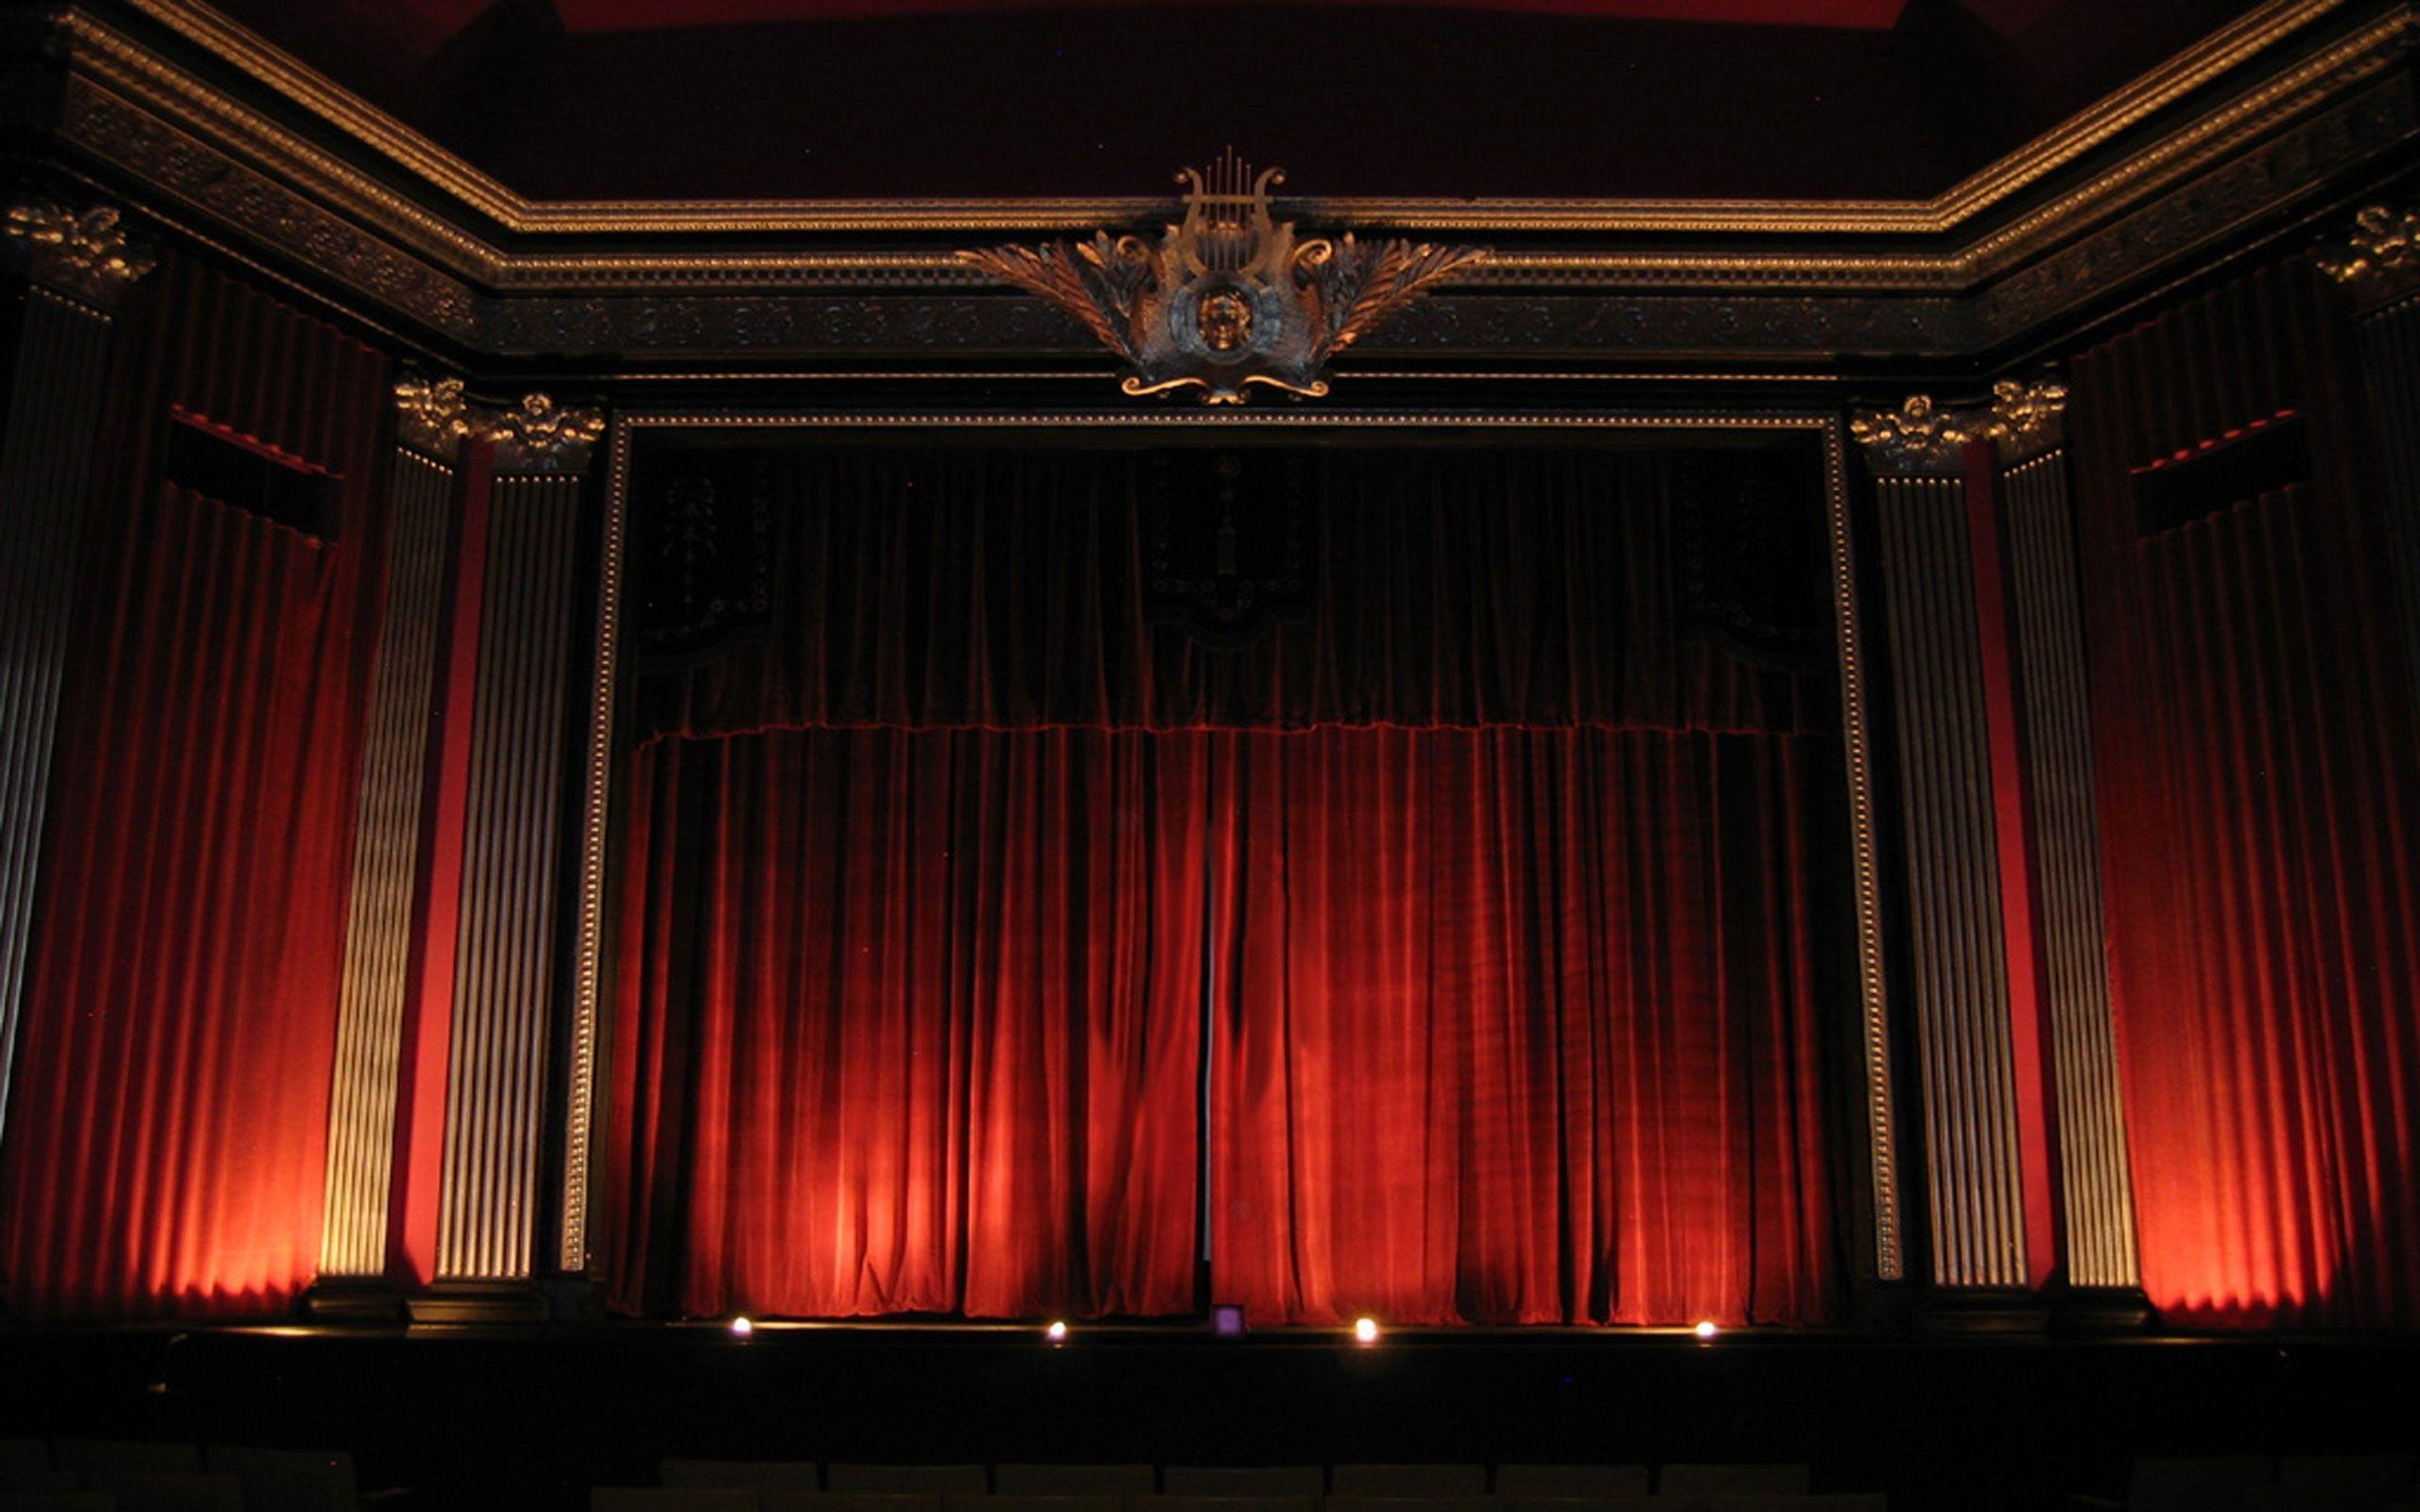 theatre wallpaper wallpapersafari - photo #26